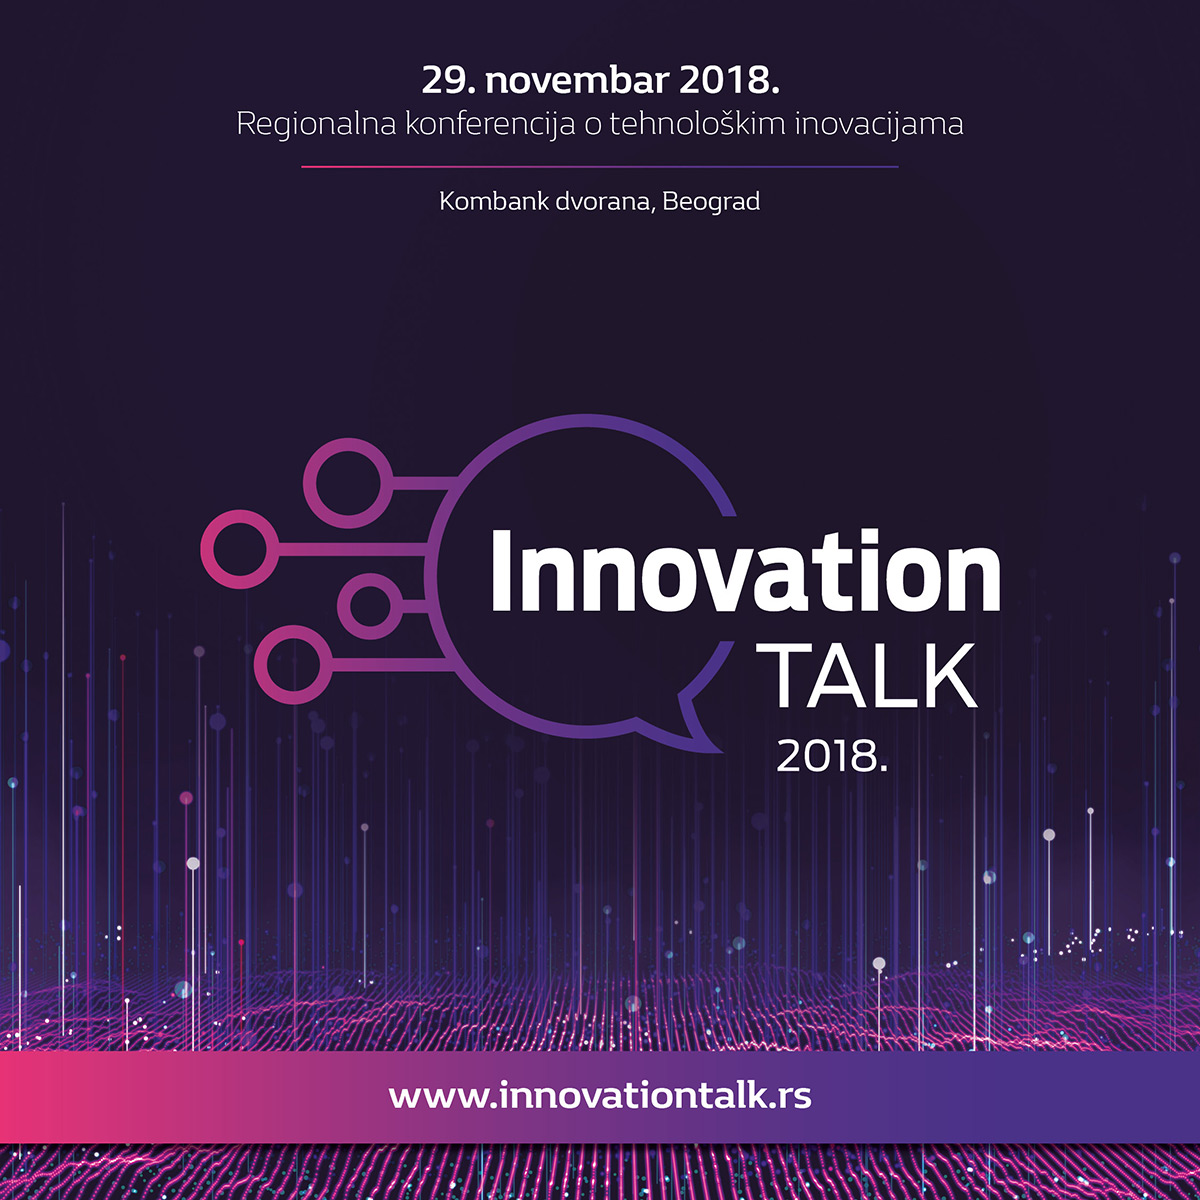 TeleGroup deo regionalne konferencije o tehnološkim inovacijama – Innovation Talk 2018